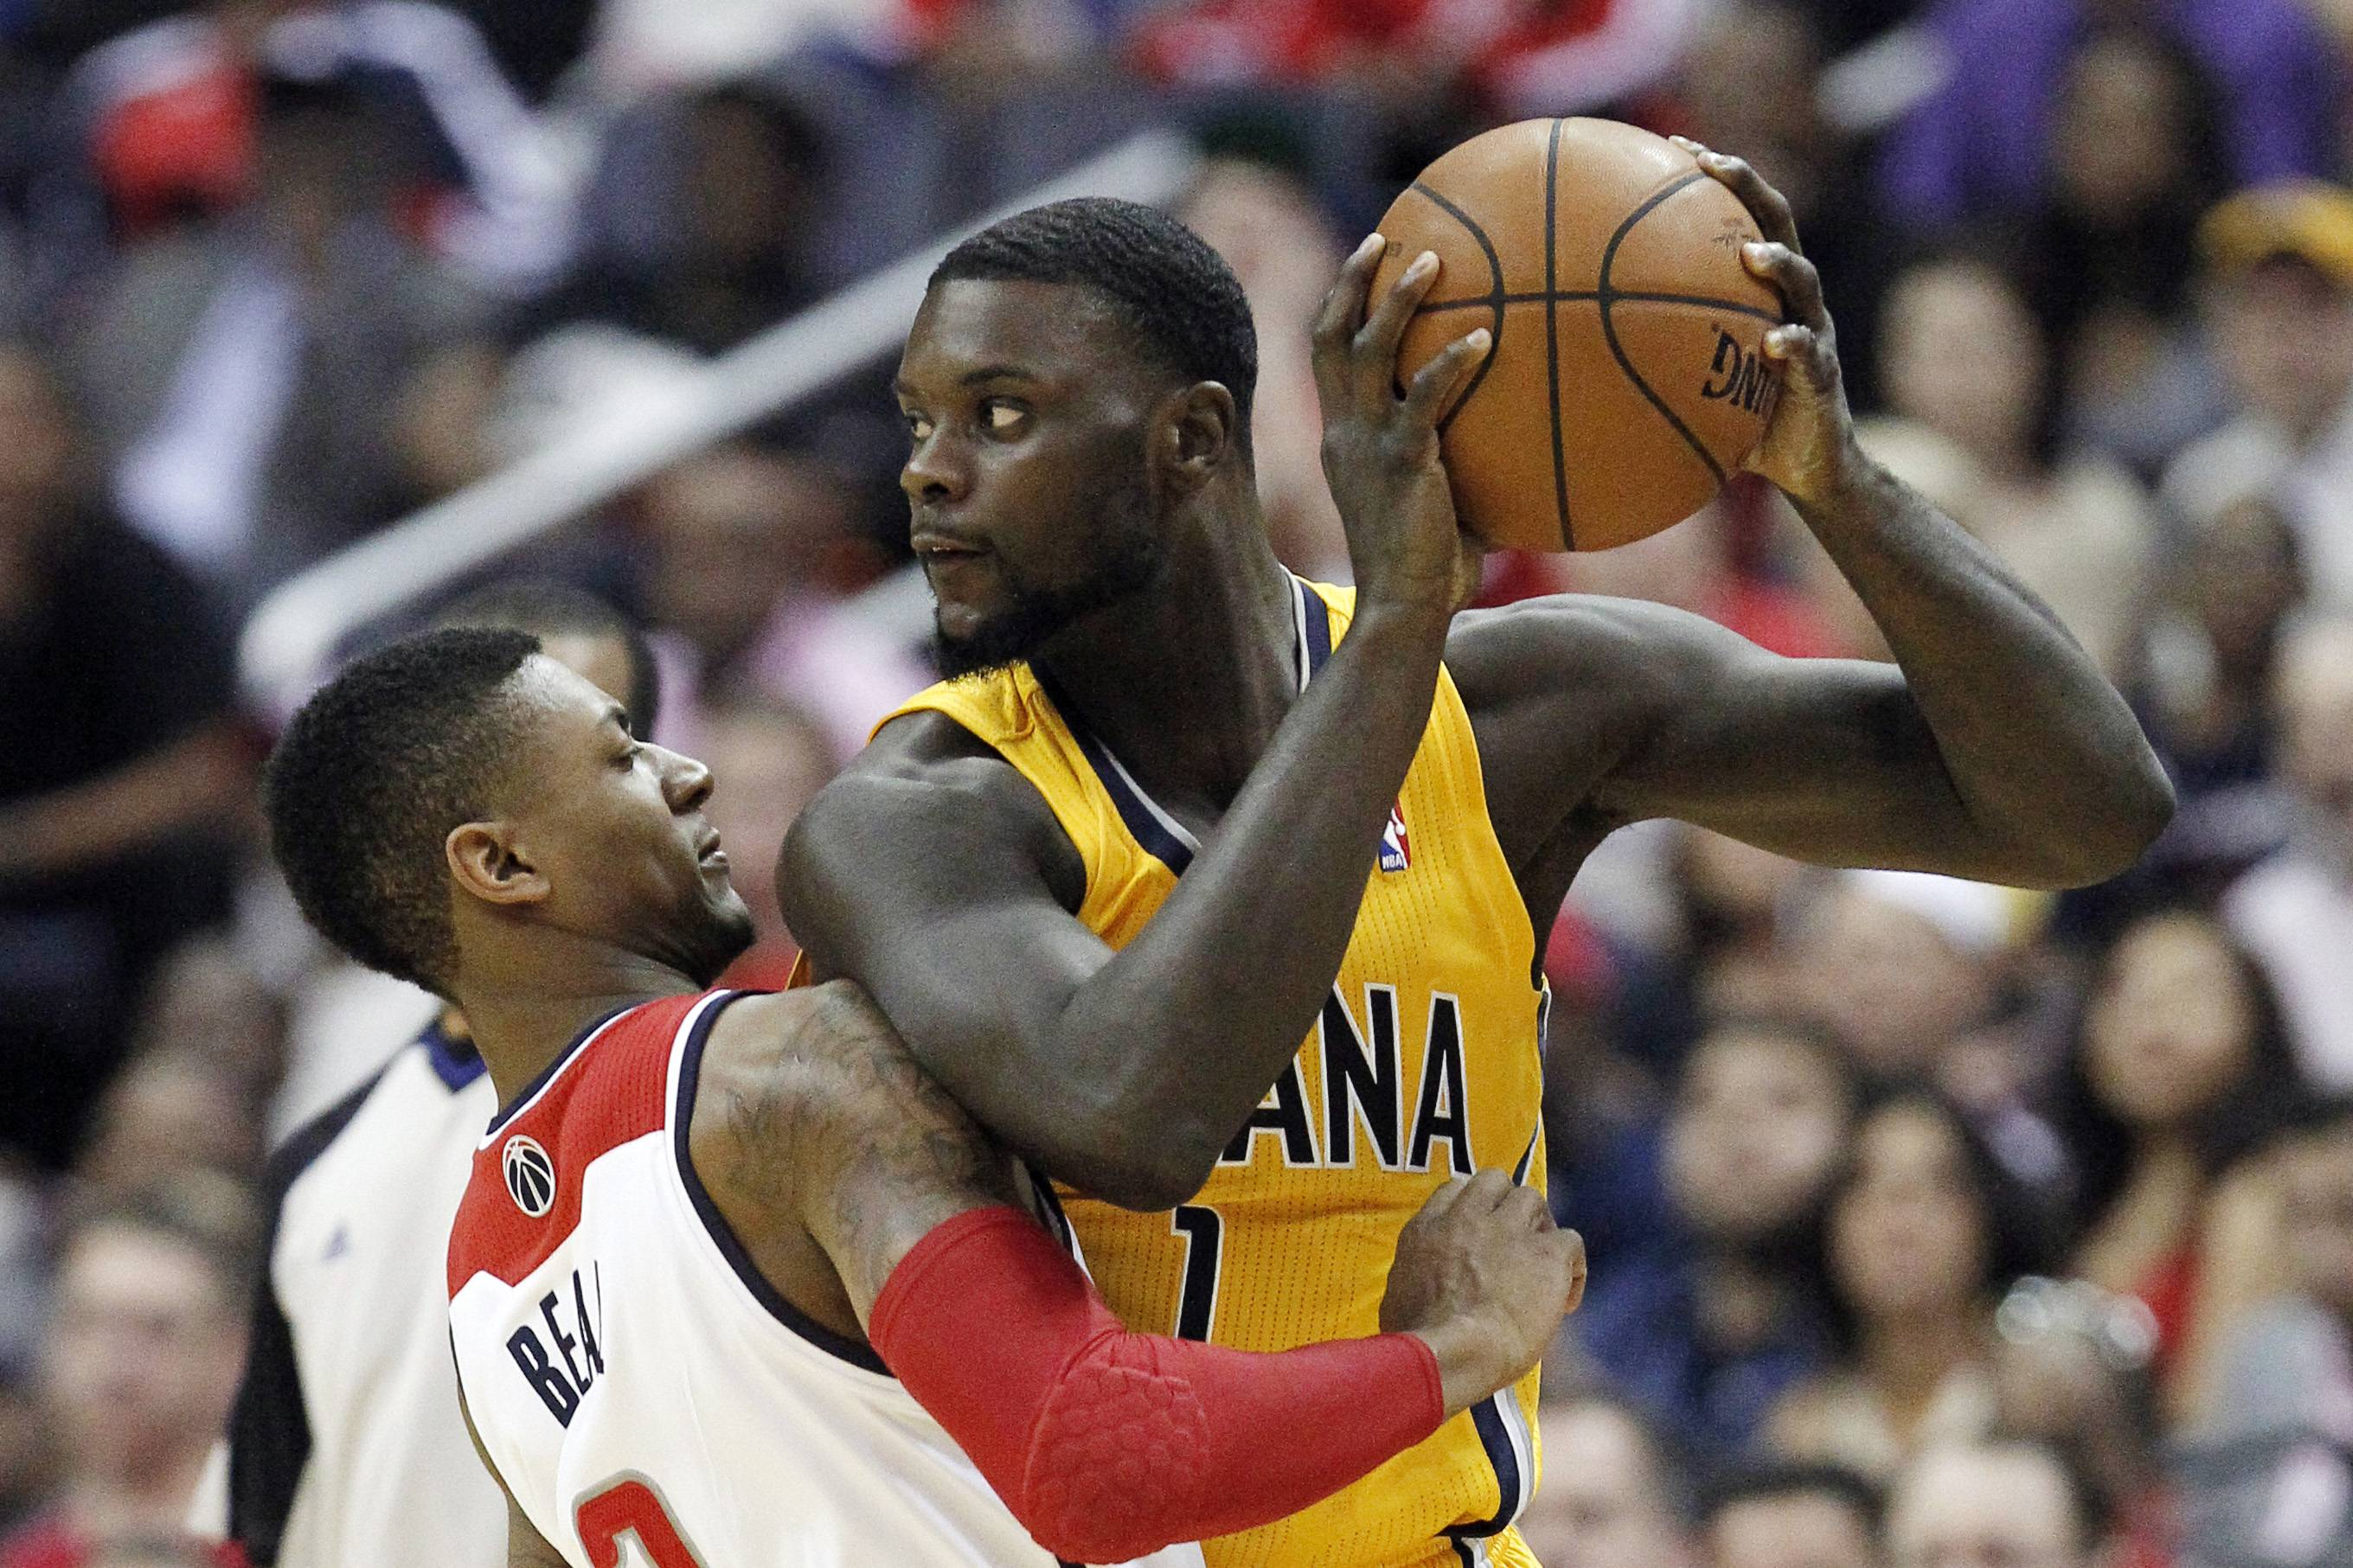 Indiana Pacers guard Lance Stephenson (1) looks for a way around Washington Wizards guard Bradley Beal during the first half of Game 3 of an Eastern Conference semifinal NBA basketball playoff game in Washington, Friday, May 9, 2014.